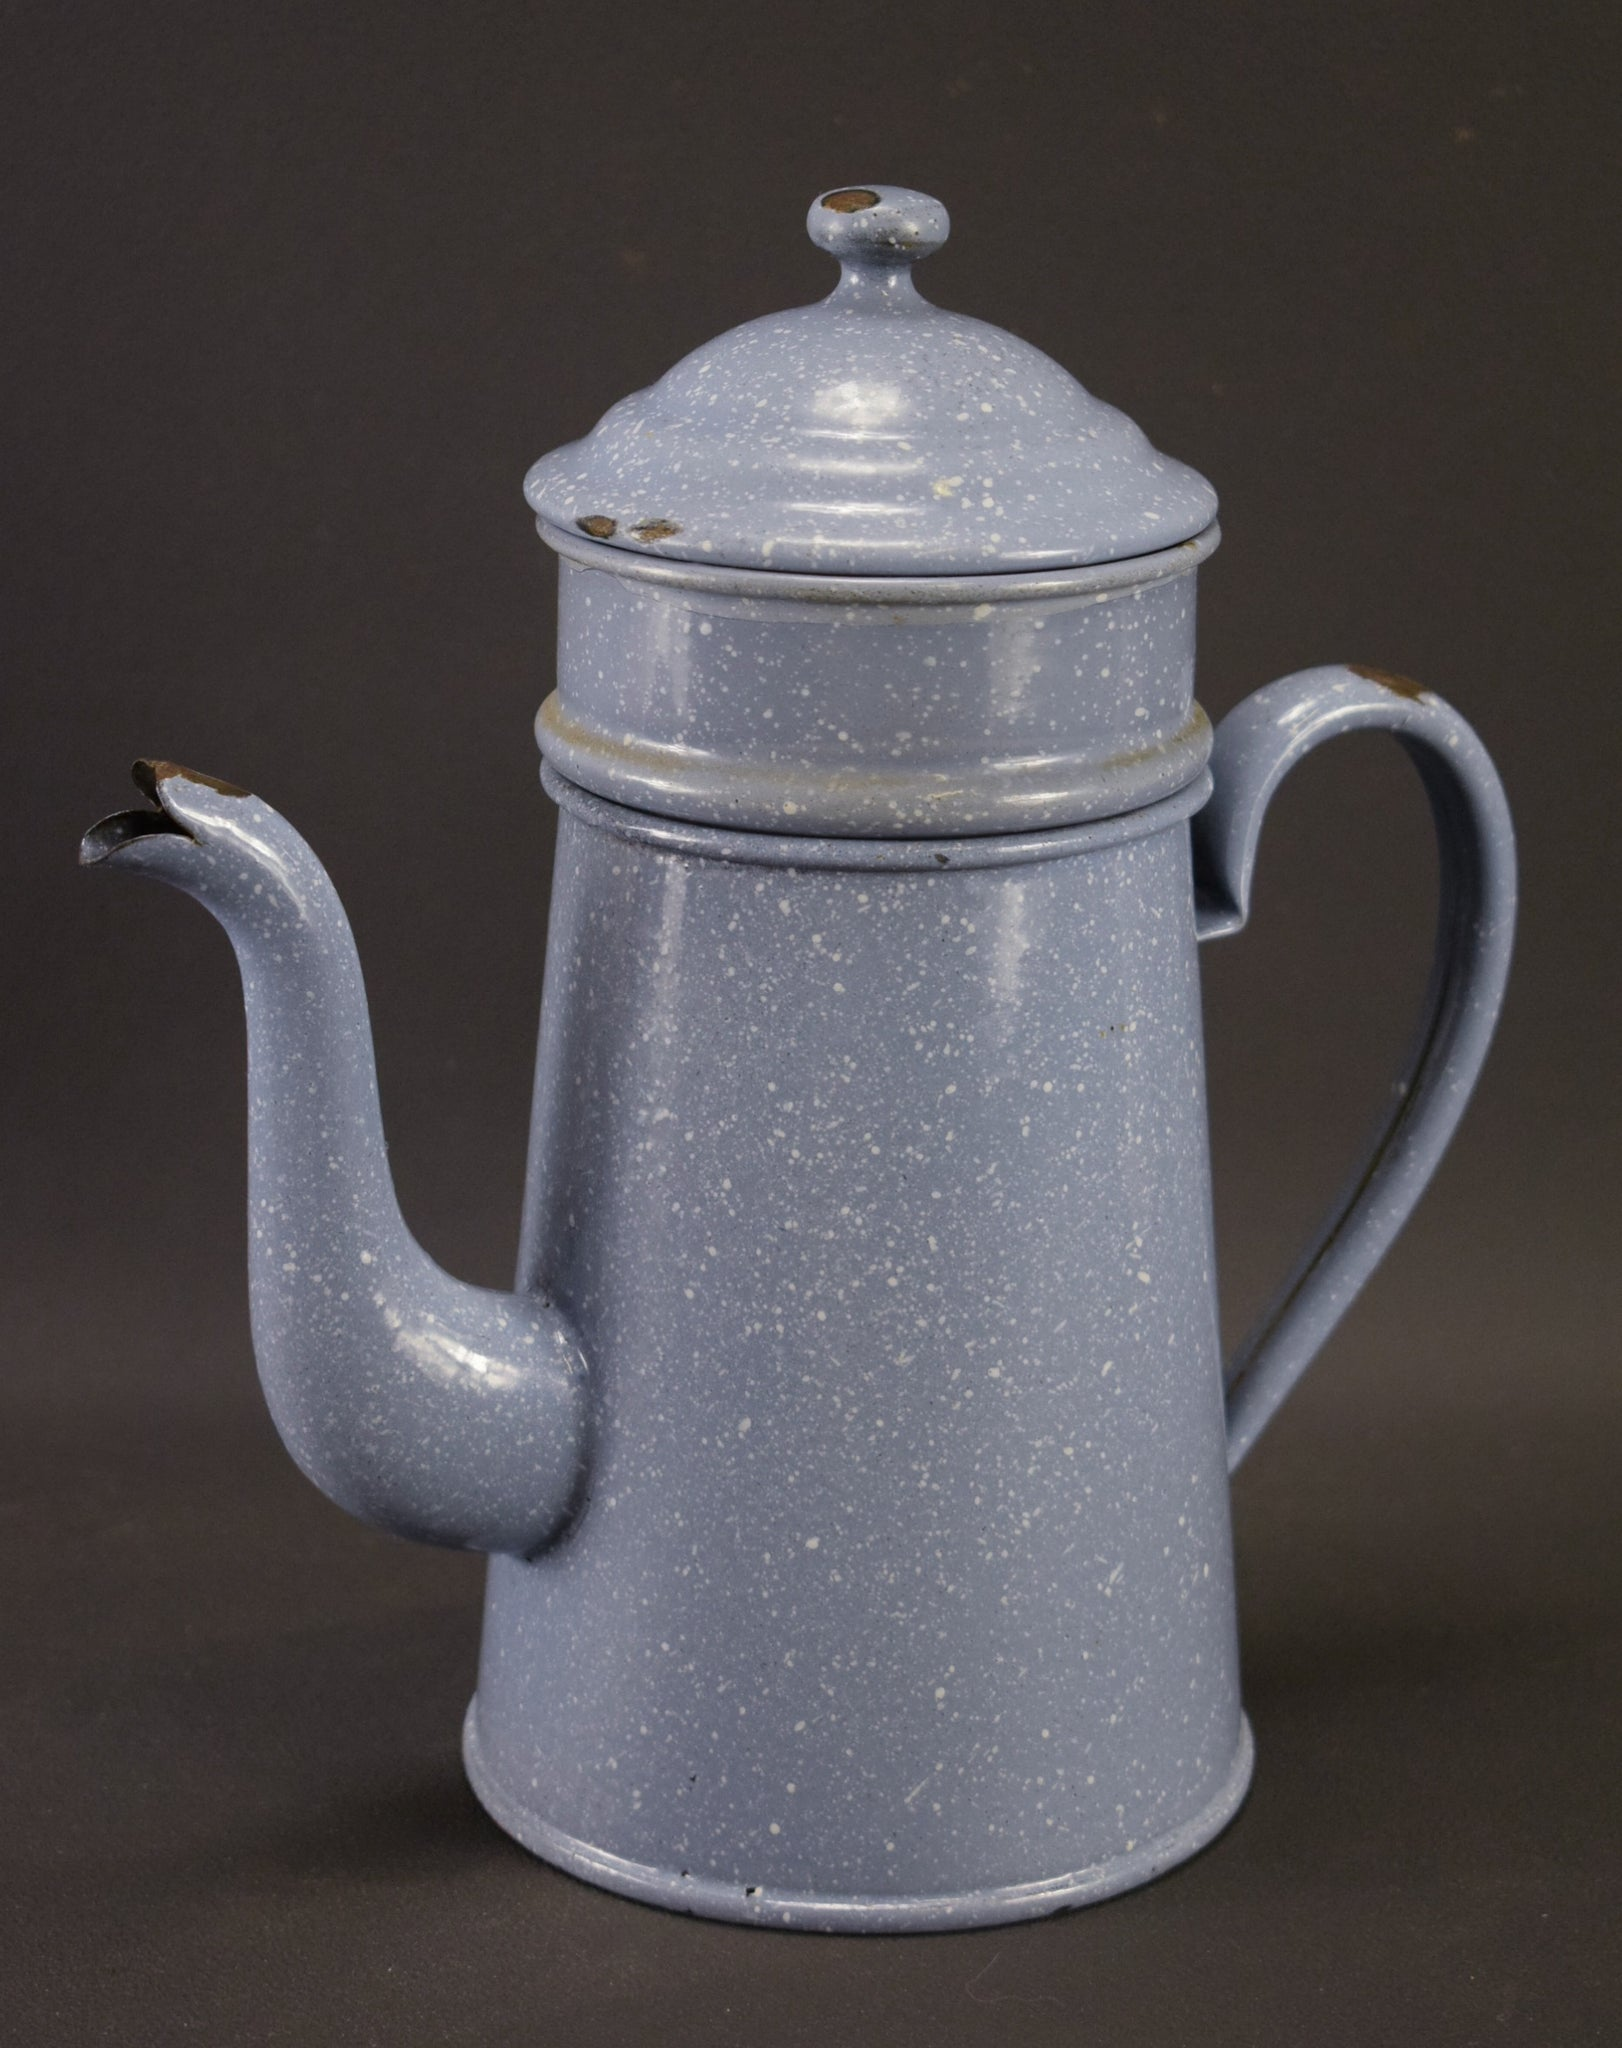 French Vintage Mottled Blue and White Enamel Coffee Pot Shabby Chic Kitchenalia